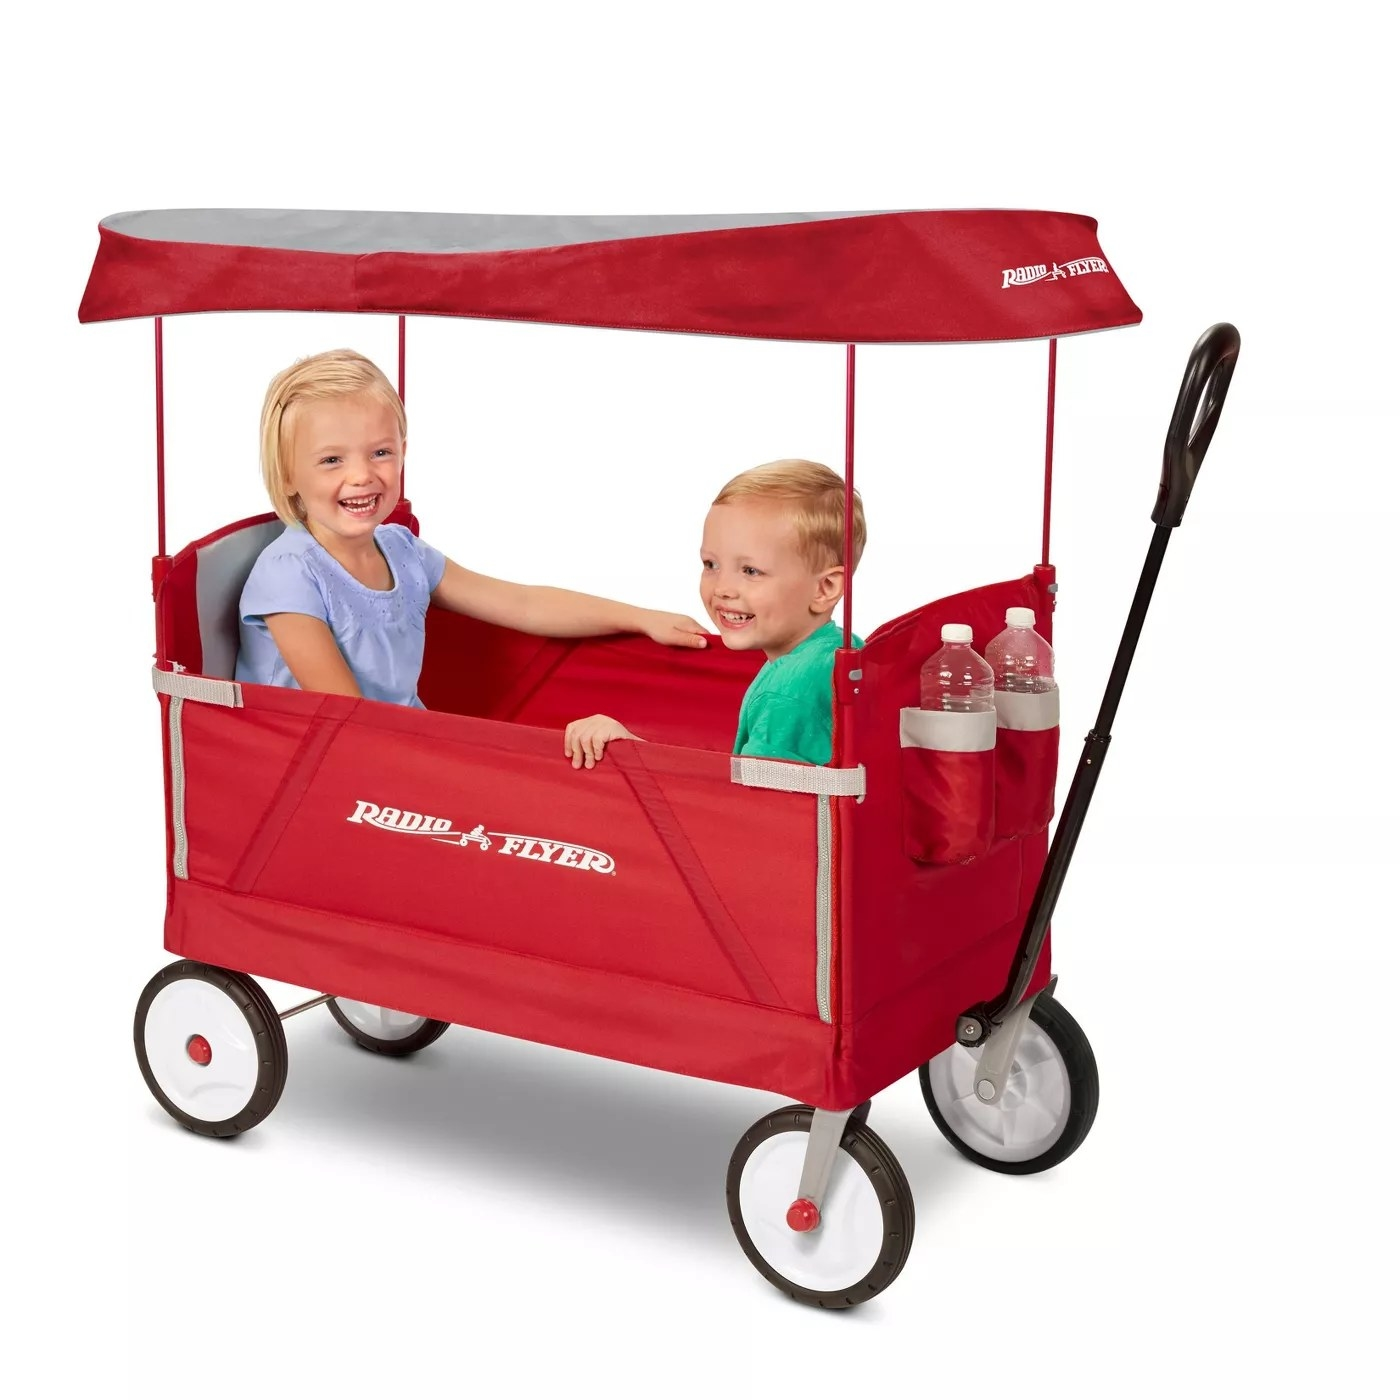 Two children sitting in the wagon